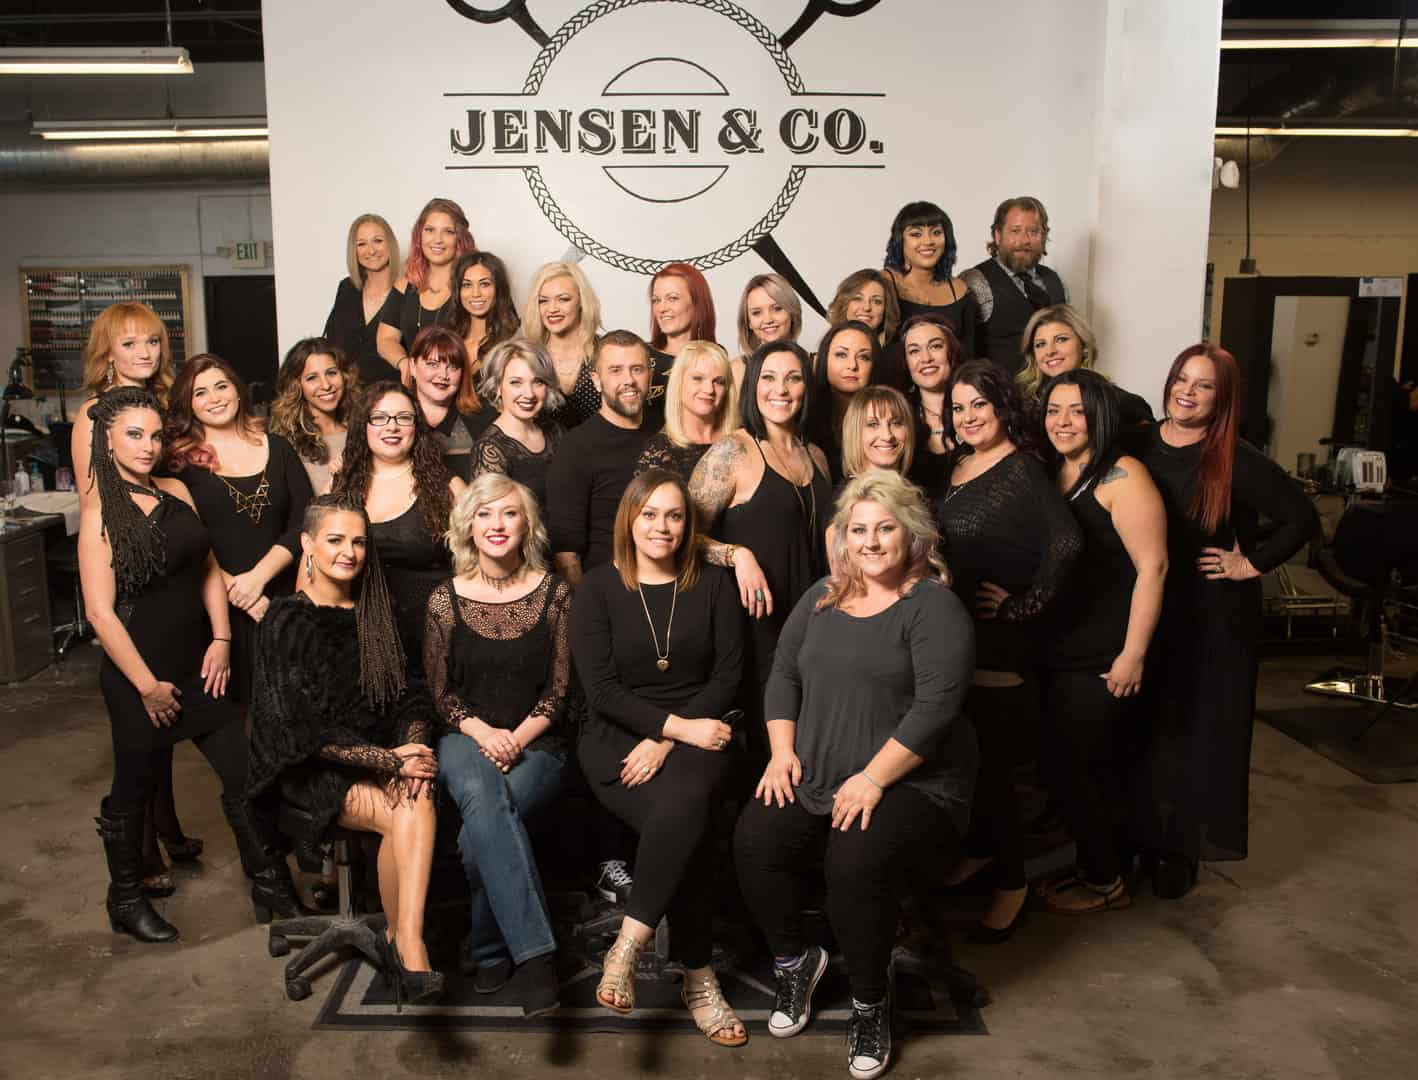 Jensen & Co. Salon in Reno, NV